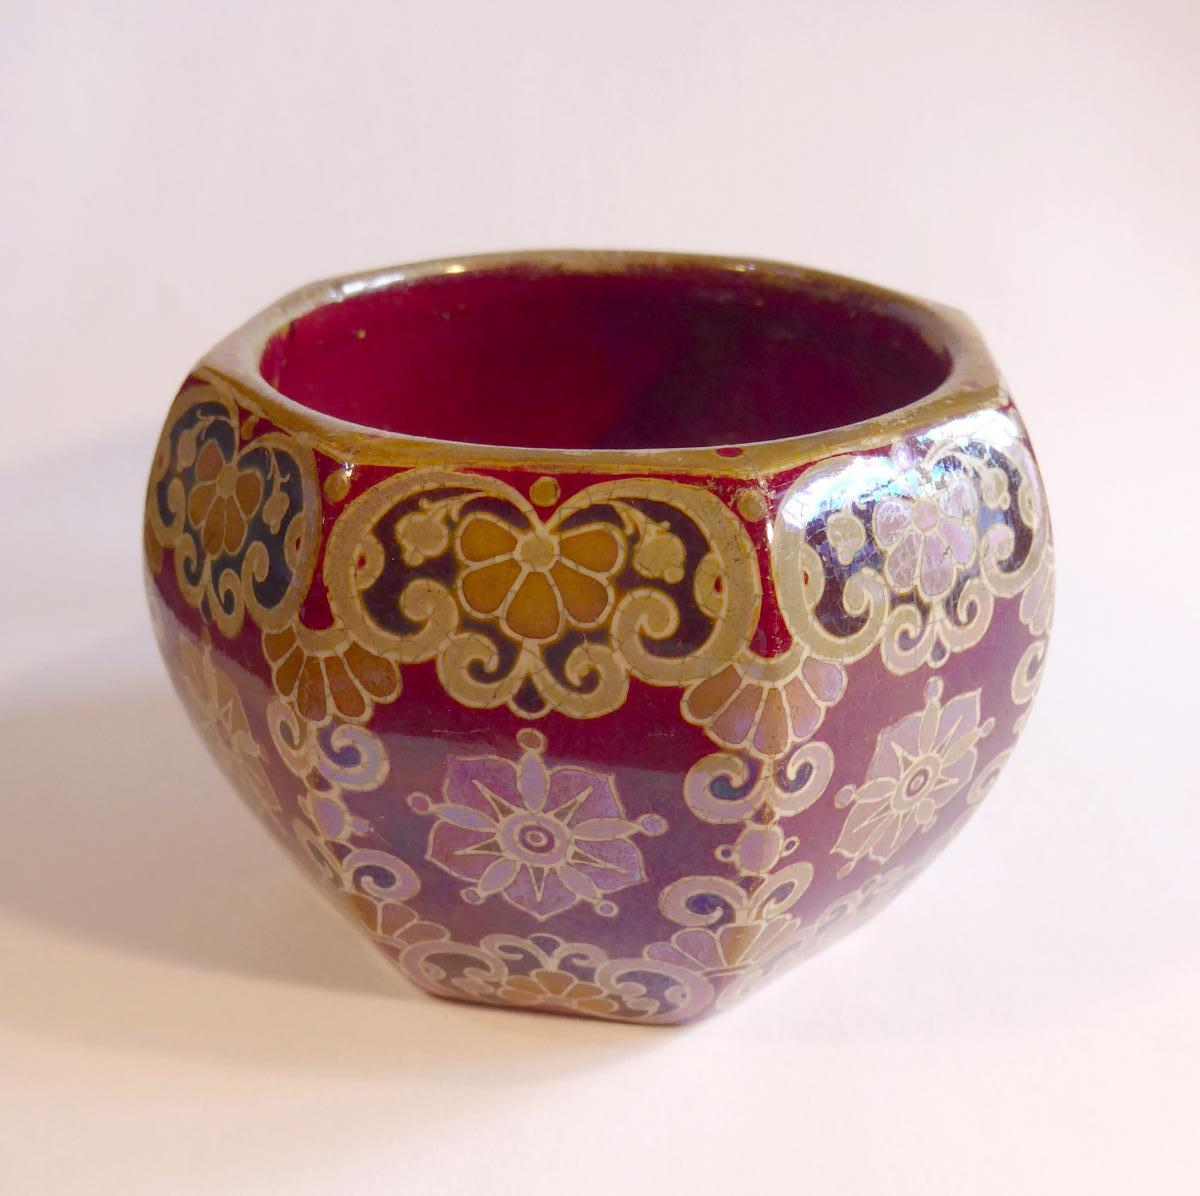 Zsolnay, Art Nouveau, Iridescent Ceramic Cup